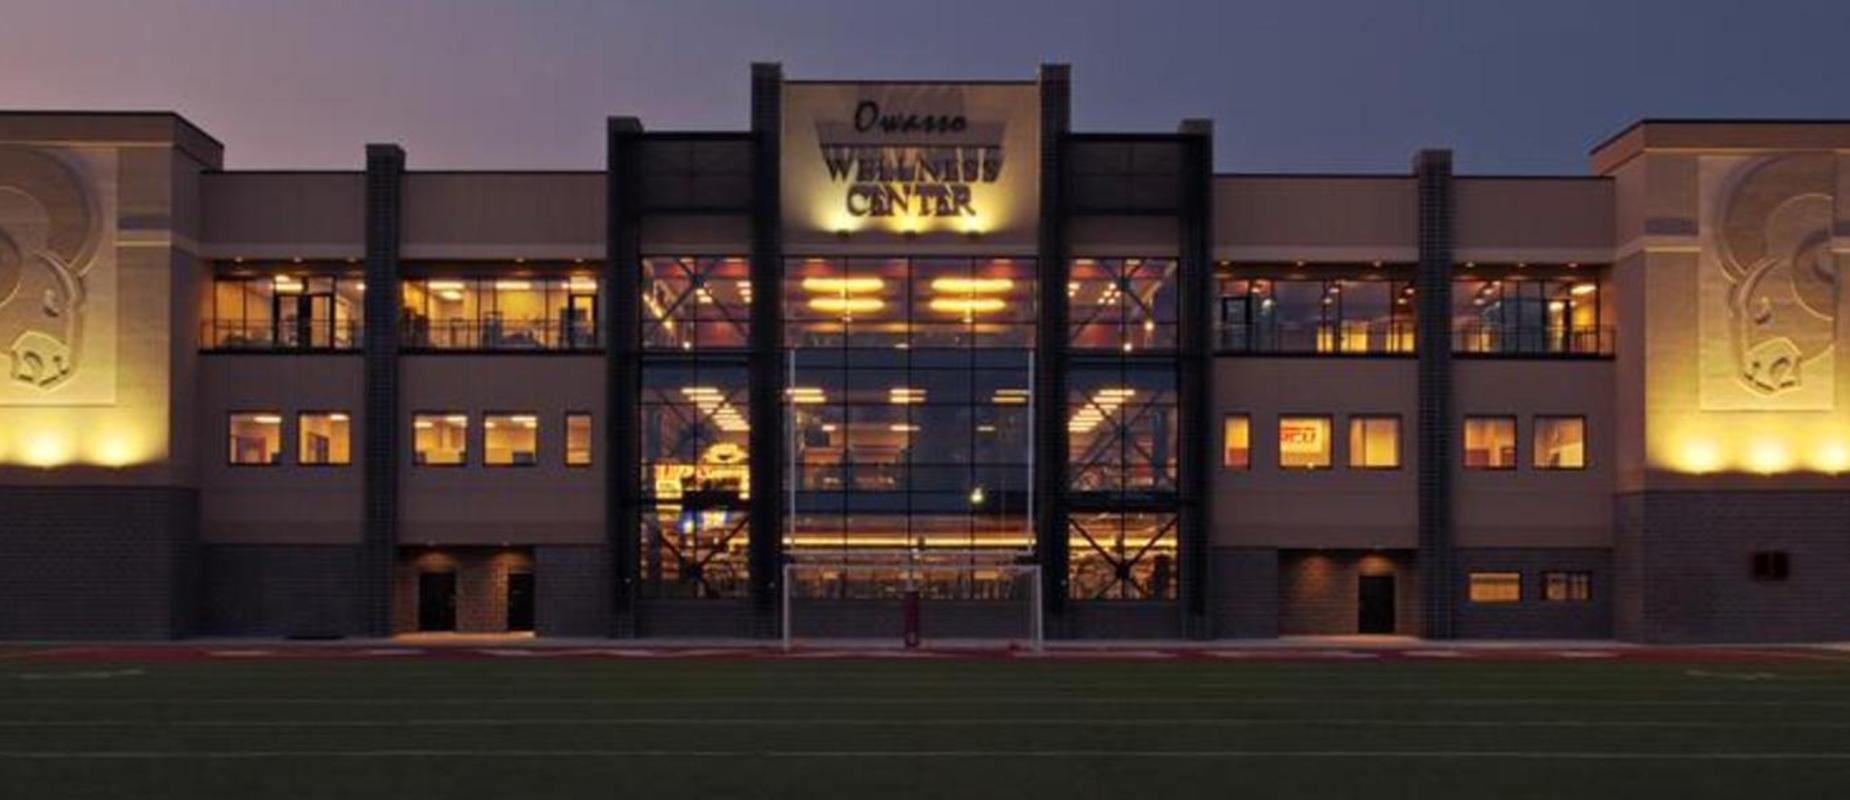 Owasso Wellness Center